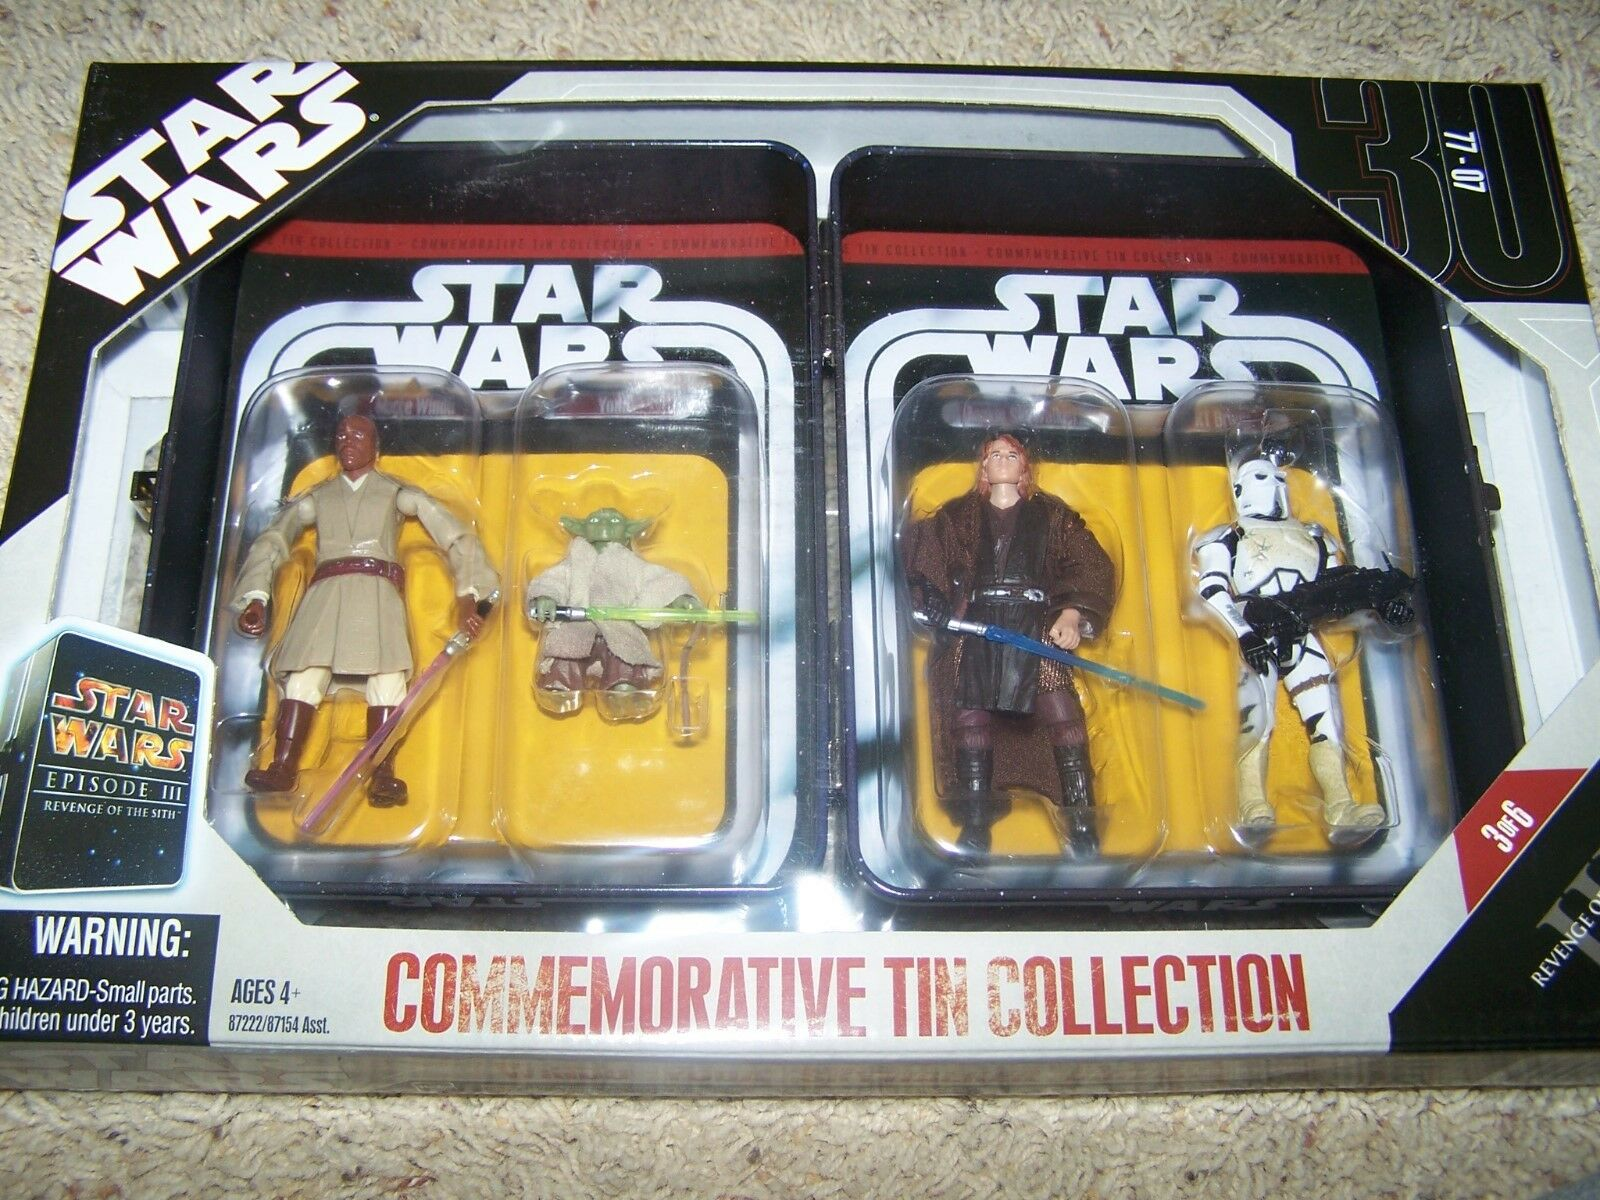 Star Wars Commemorative Tin Collection Revenge of the Sith 3.75  figure set